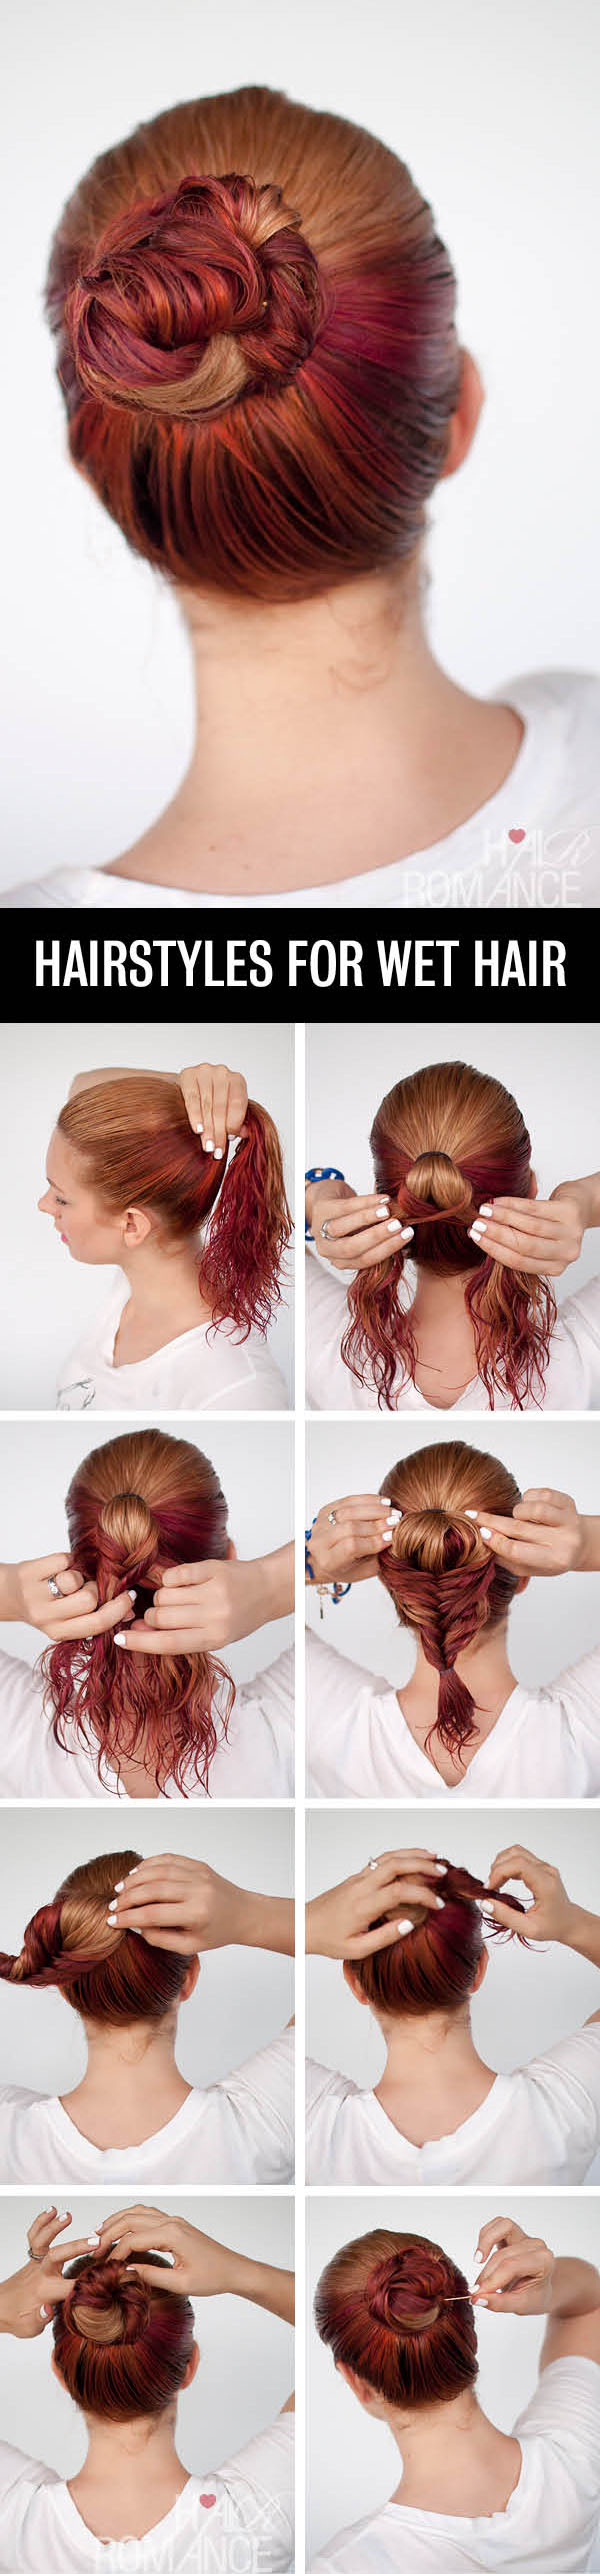 Hair Romance - Hairstyle tutorials for wet hair - the fishtail bun